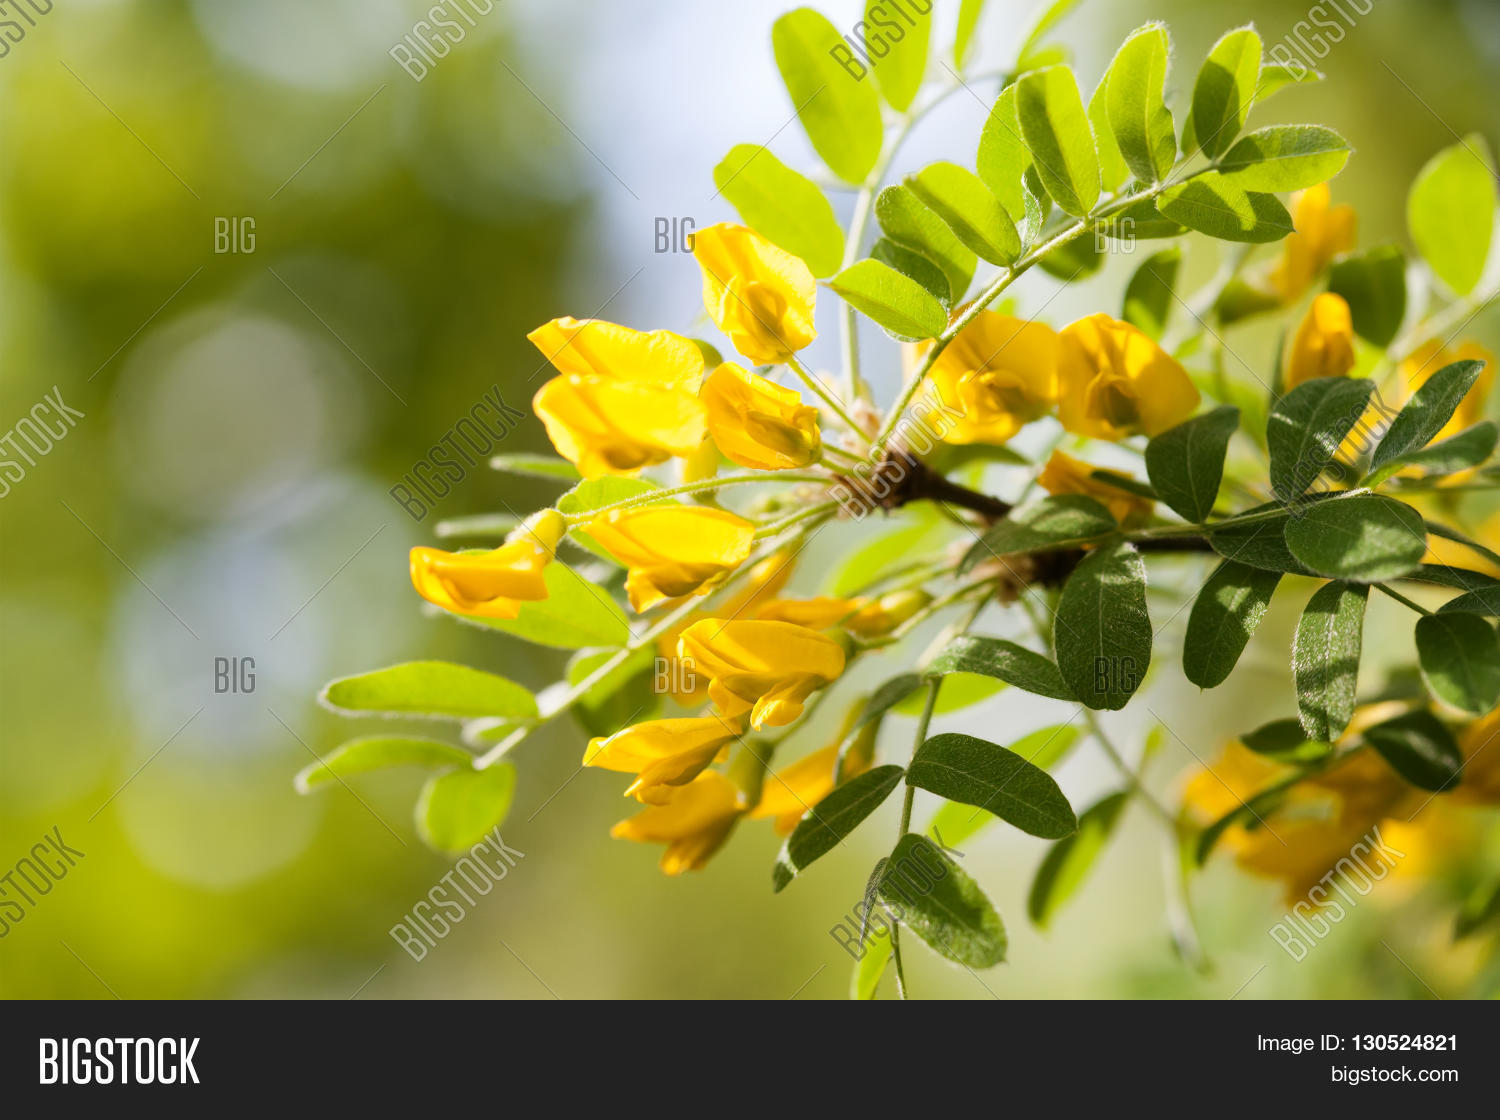 Acacia Tree Branch With Green Leaves And Yellow Flowers Blooming Caragana Arborescens Siberian Peashrub